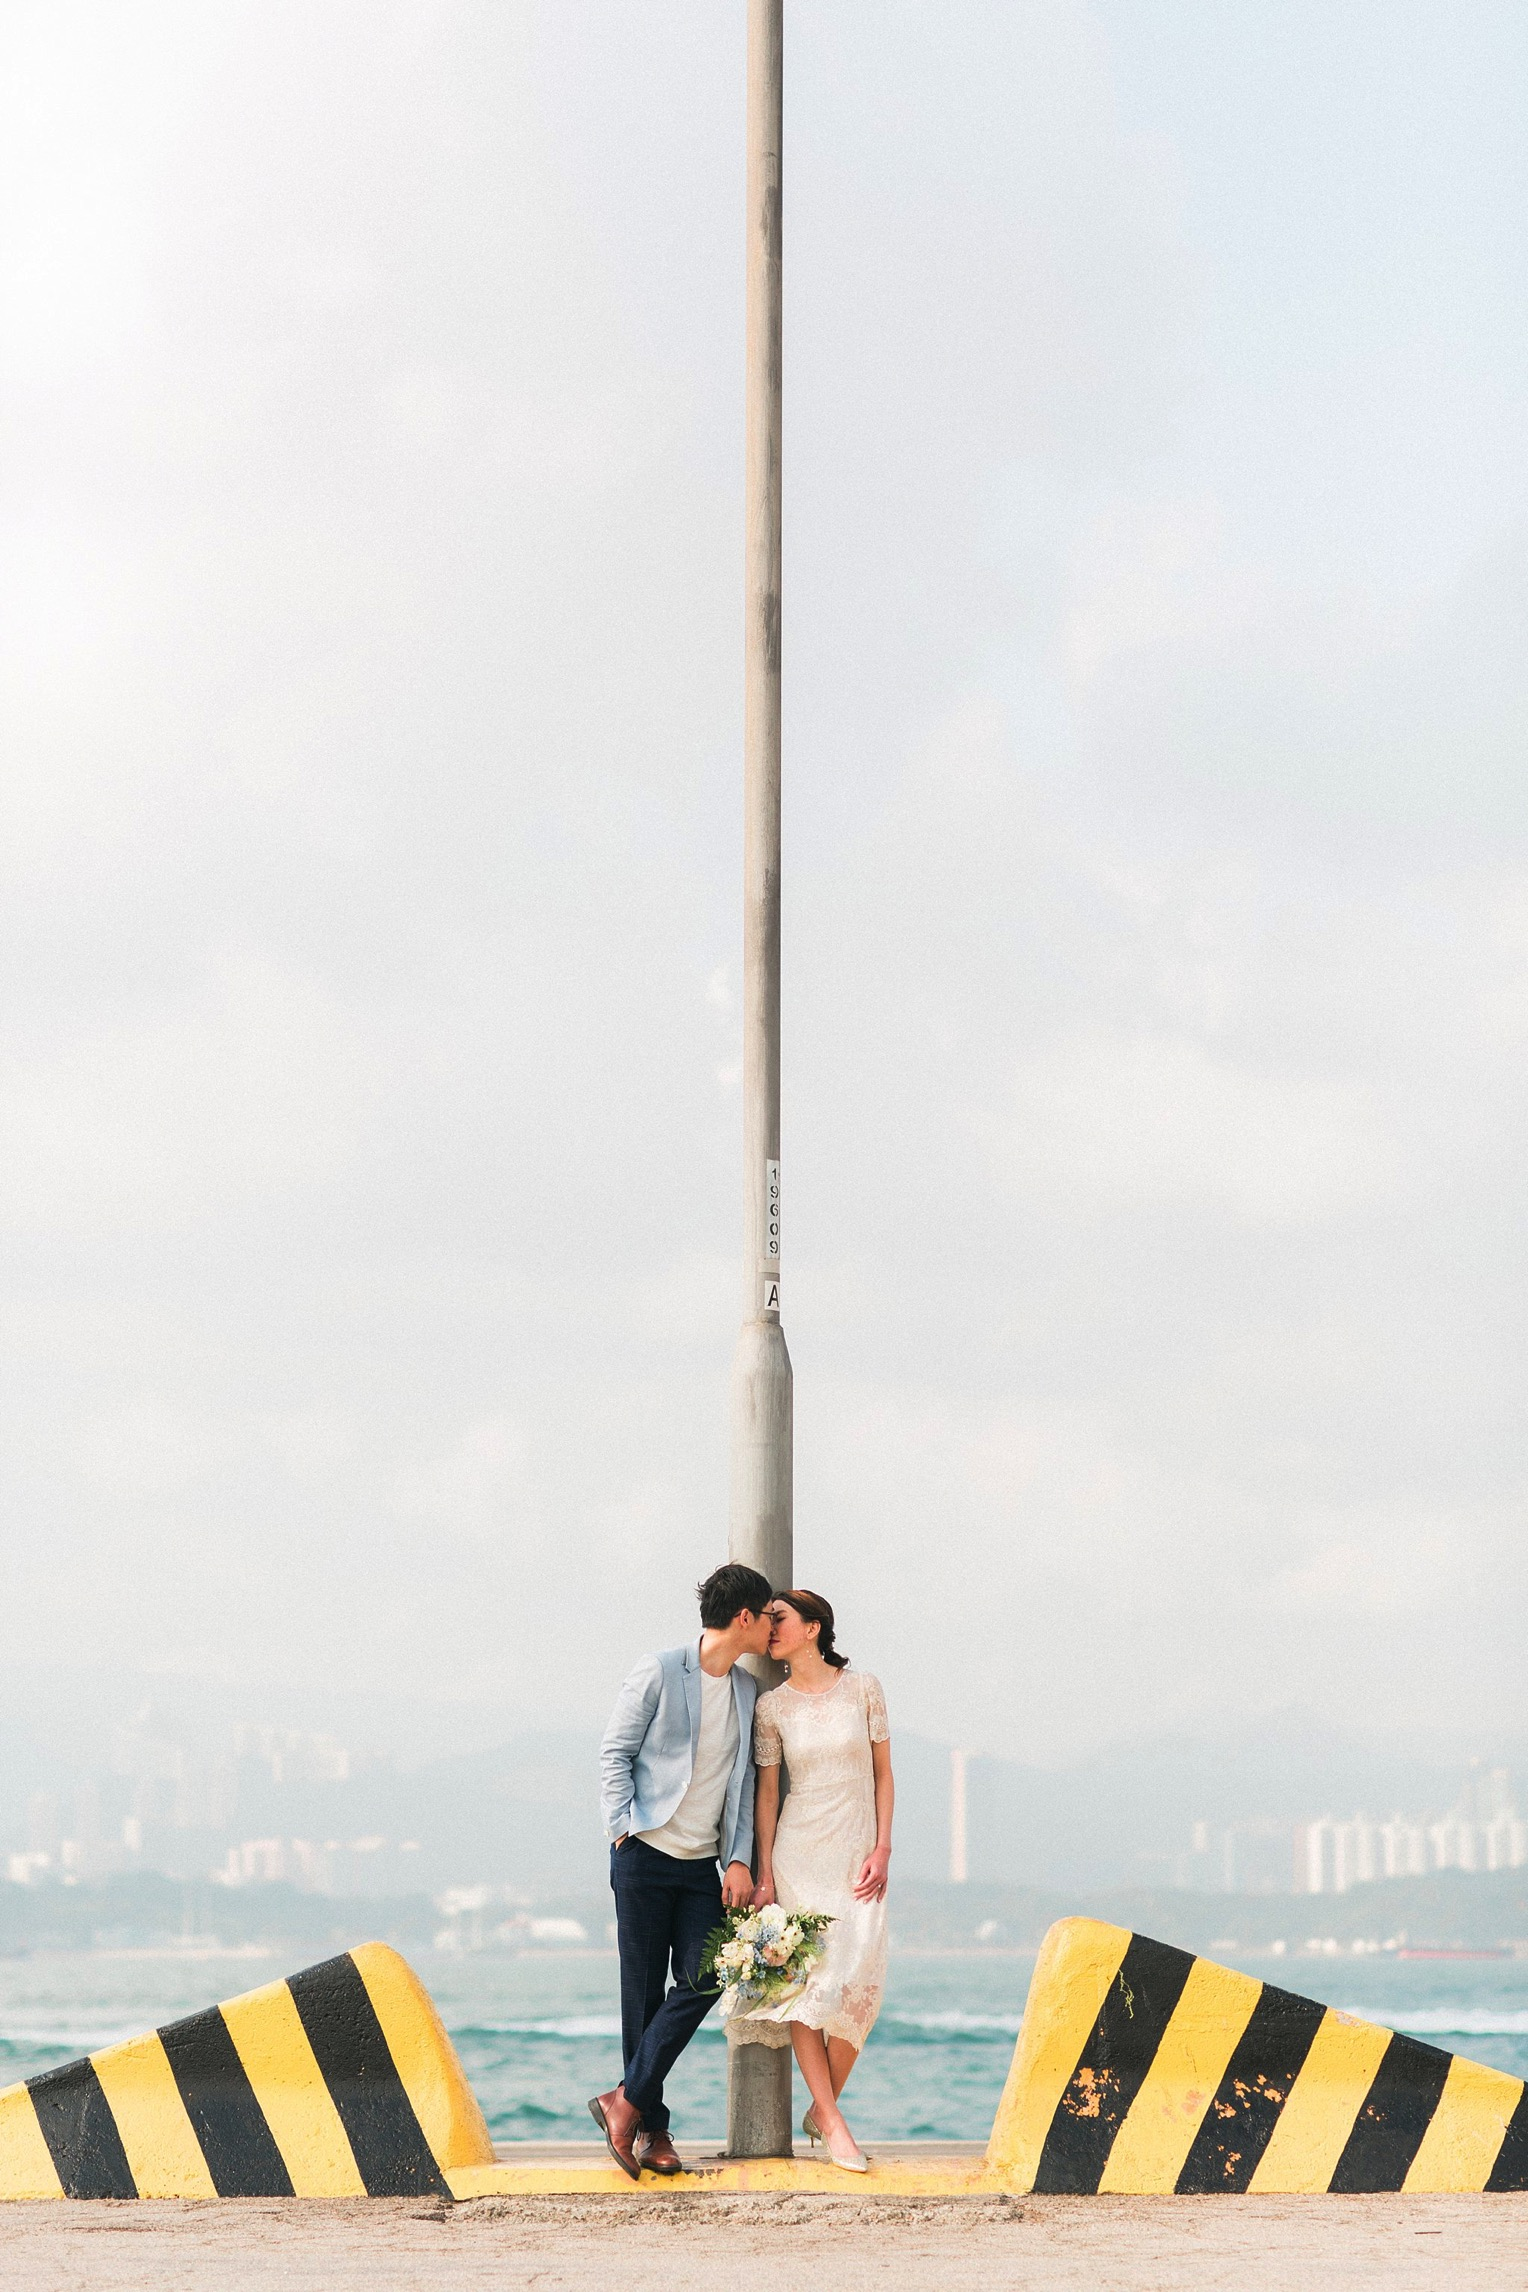 French Grey Photography Hong Kong Prewedding131